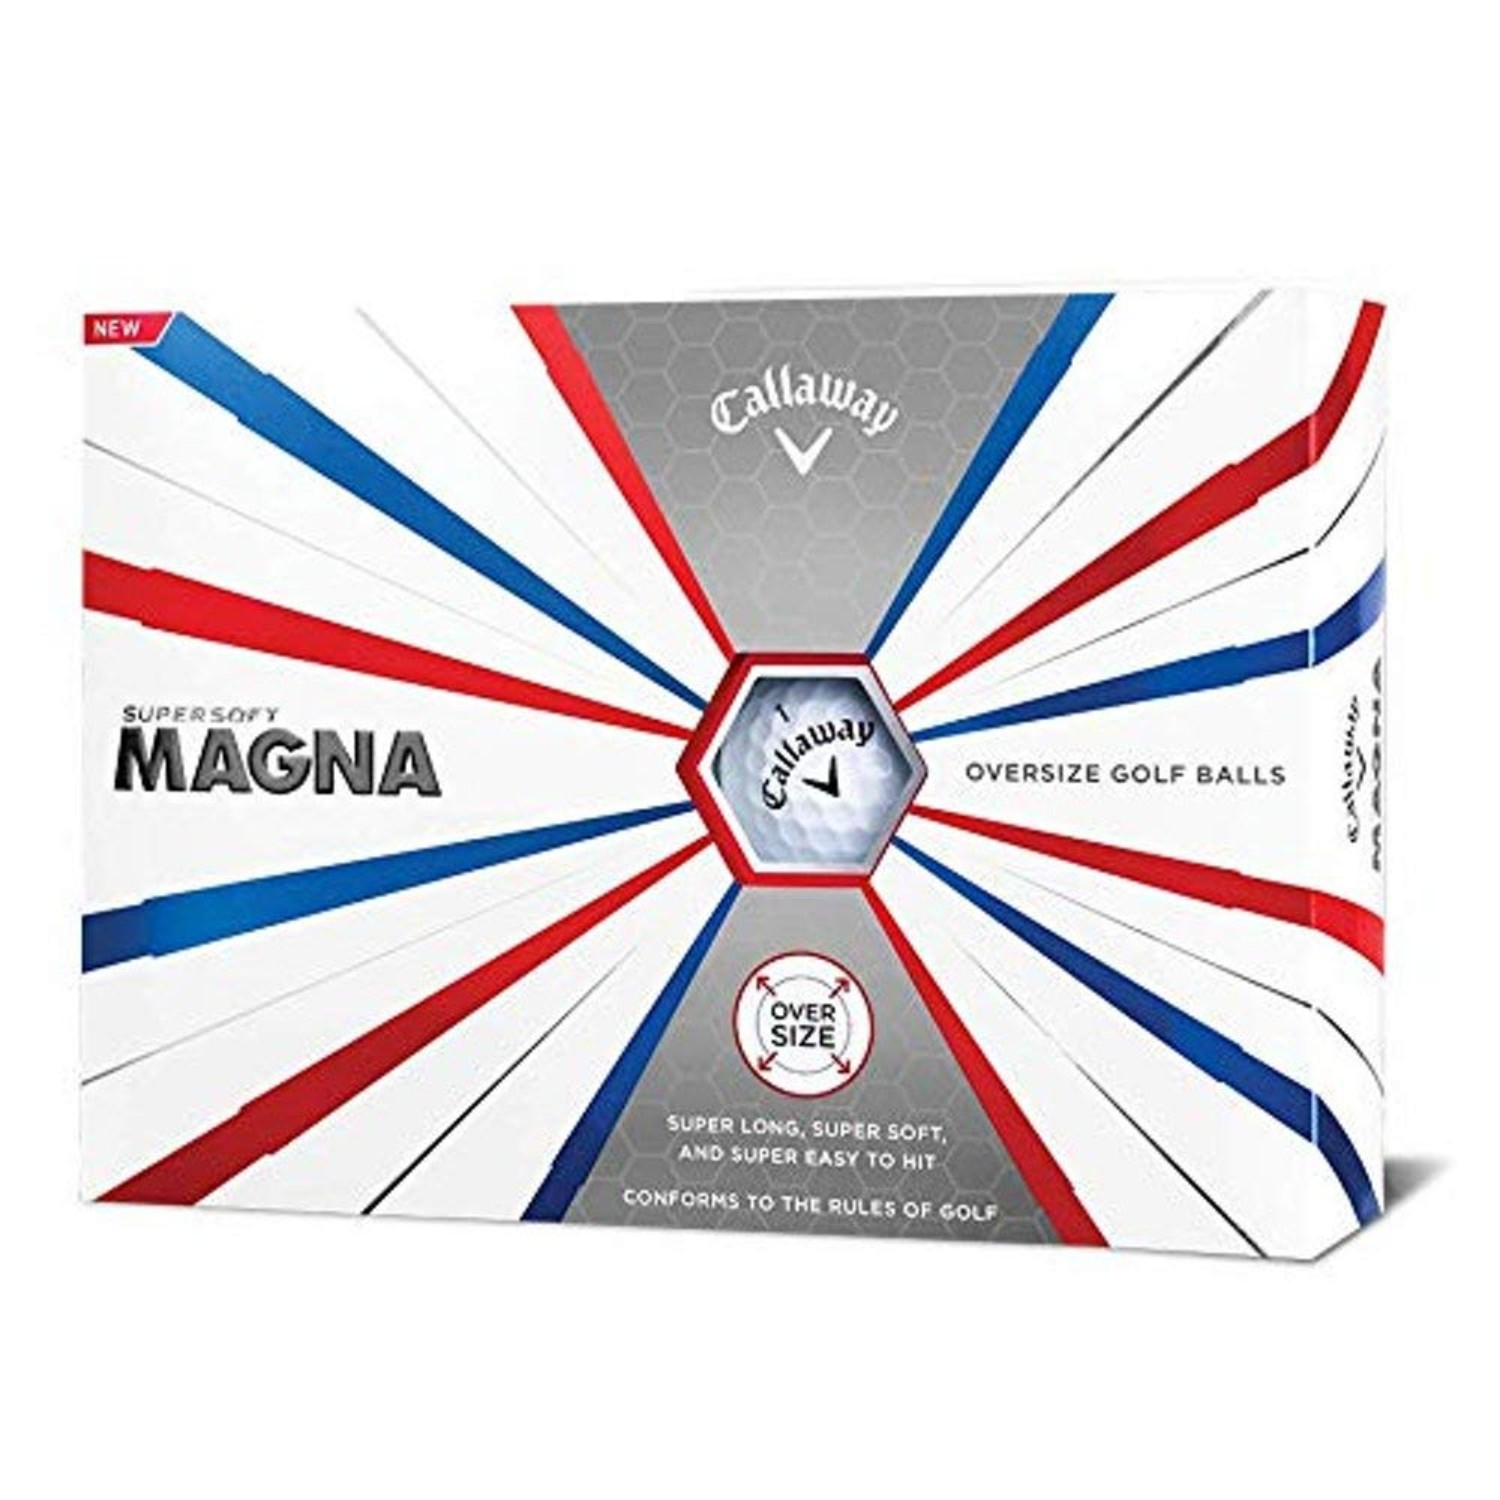 Callaway Golf Supersoft Magna Golf Balls - White - Dozen